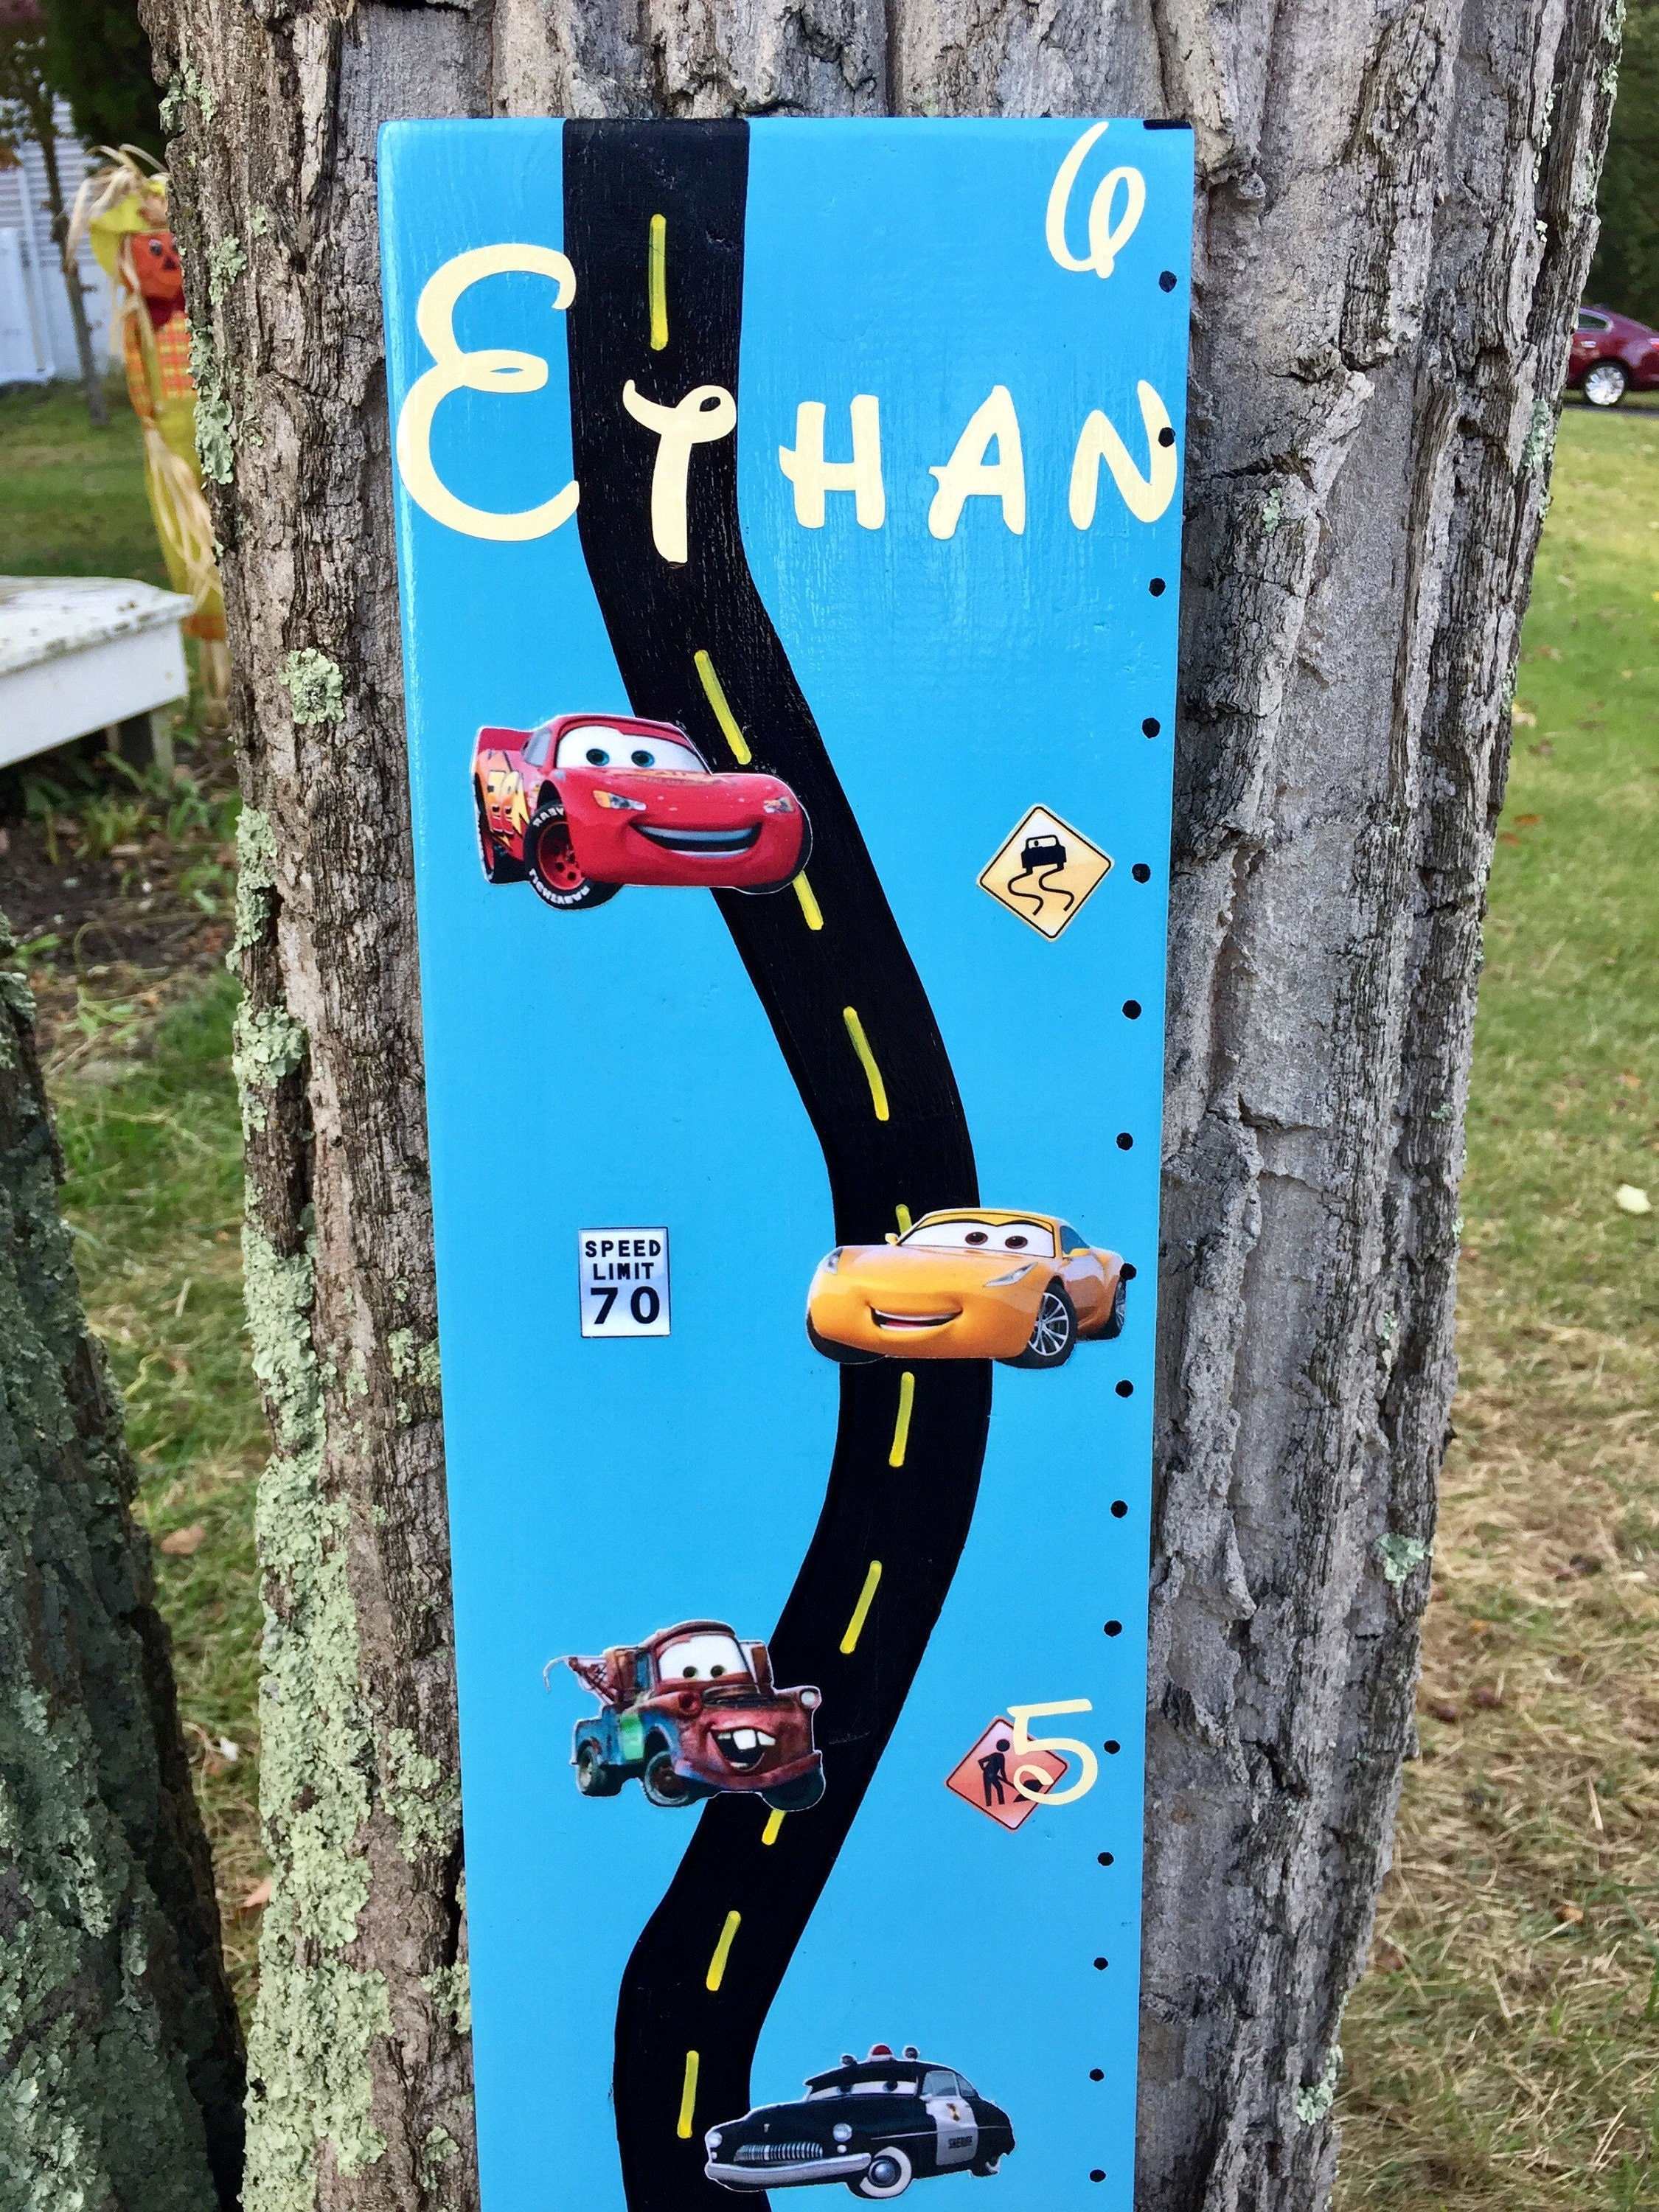 Disney pixar cars themed growth chart from thestarfishwish on etsy disney pixar cars themed growth chart sold by thestarfishwish nvjuhfo Image collections